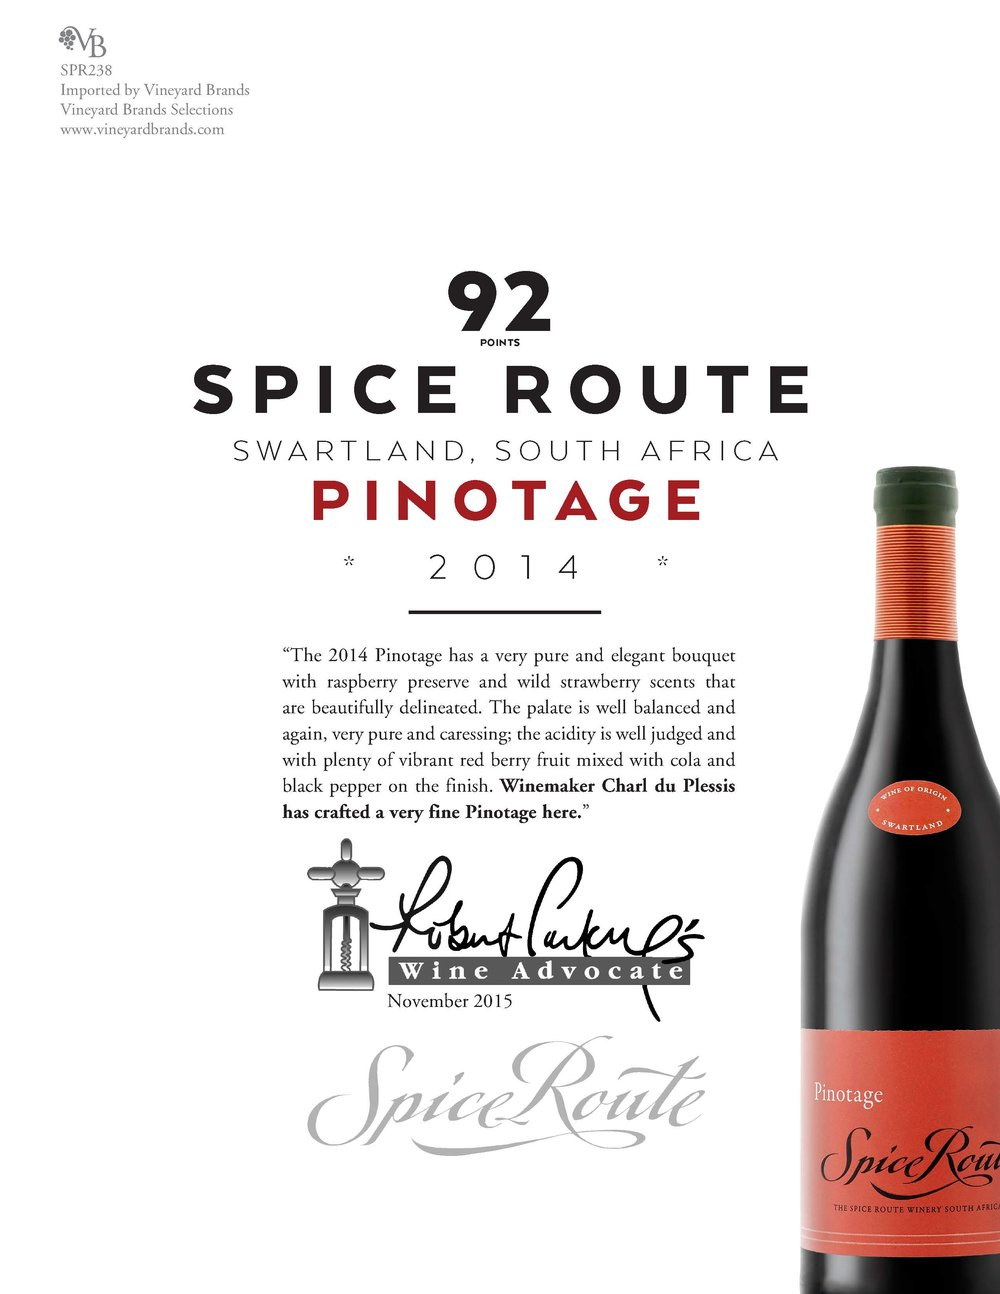 Spice Route Pinotage South Africa